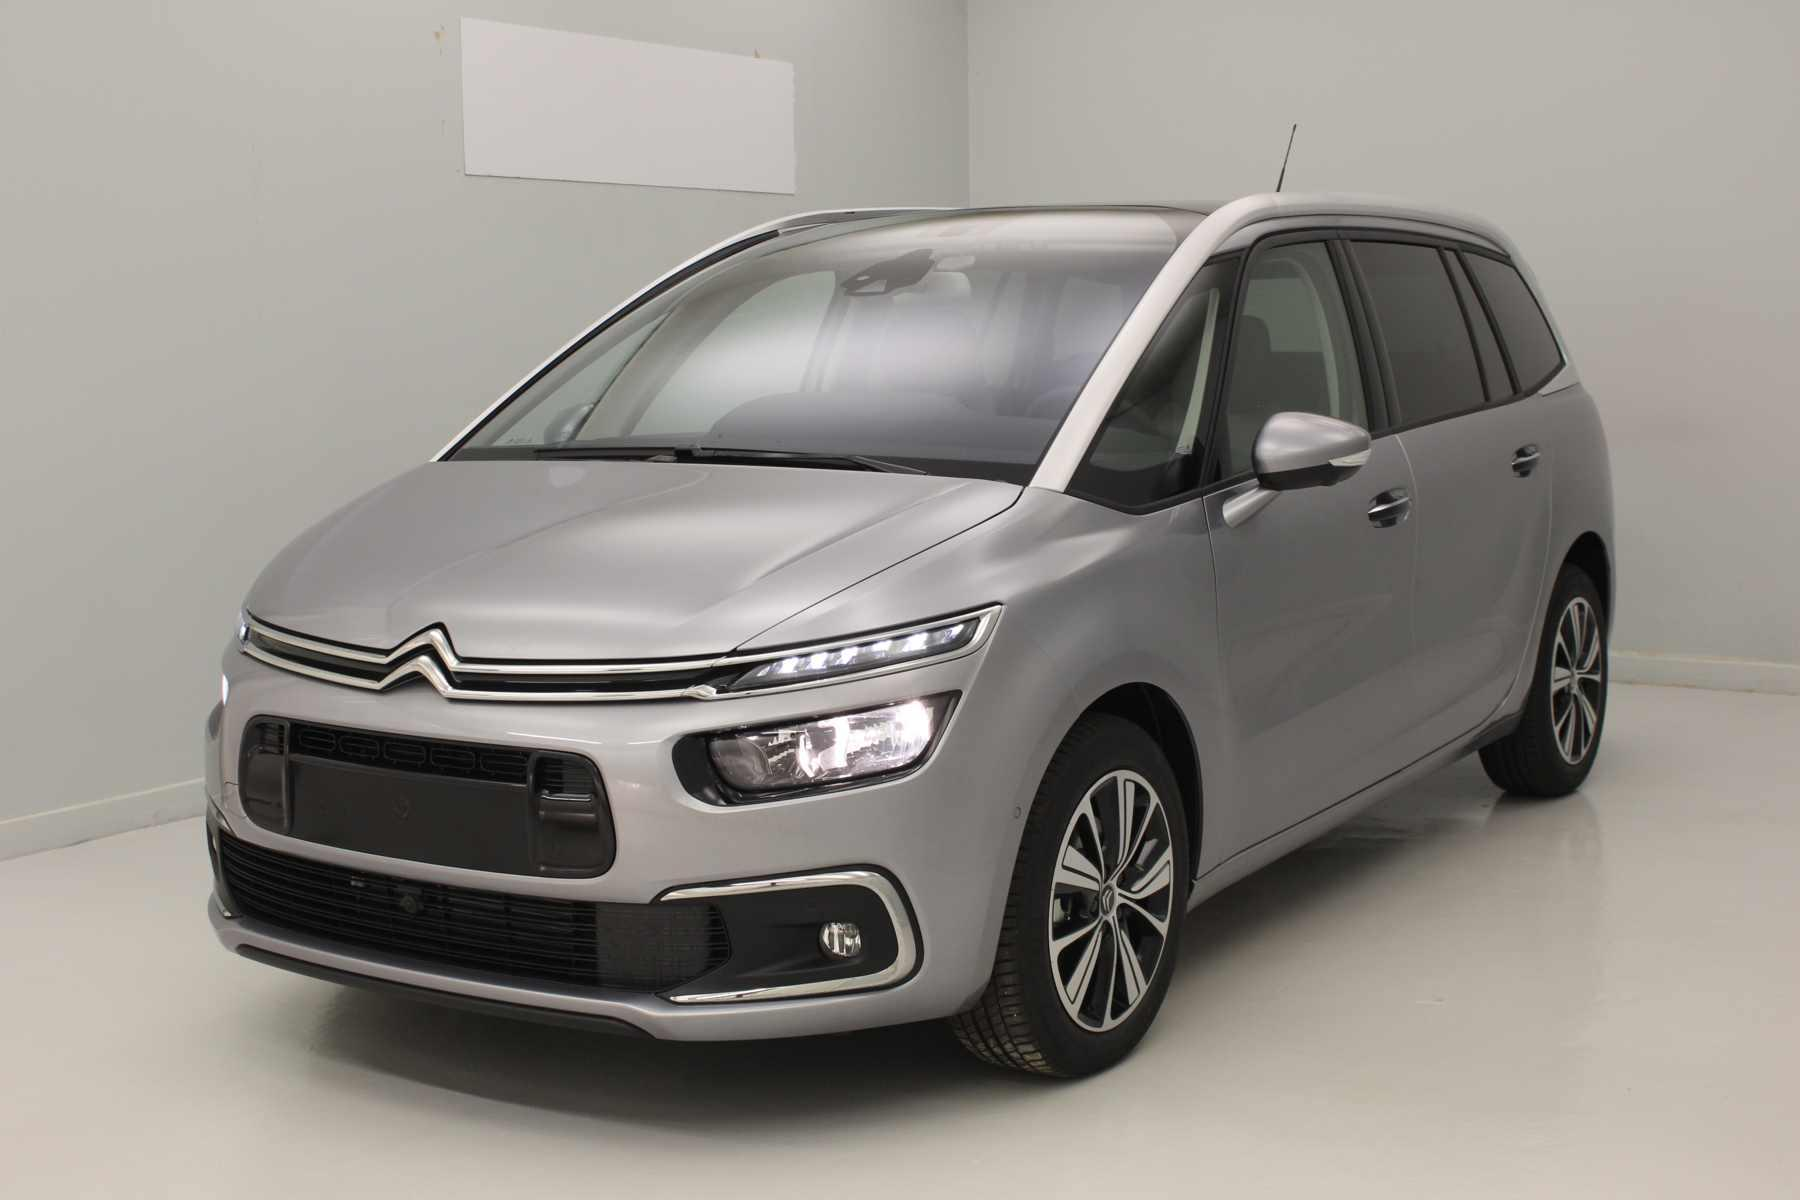 citroen grand c4 picasso bluehdi 150 s s shine gris acier toit panoramique vision 360. Black Bedroom Furniture Sets. Home Design Ideas